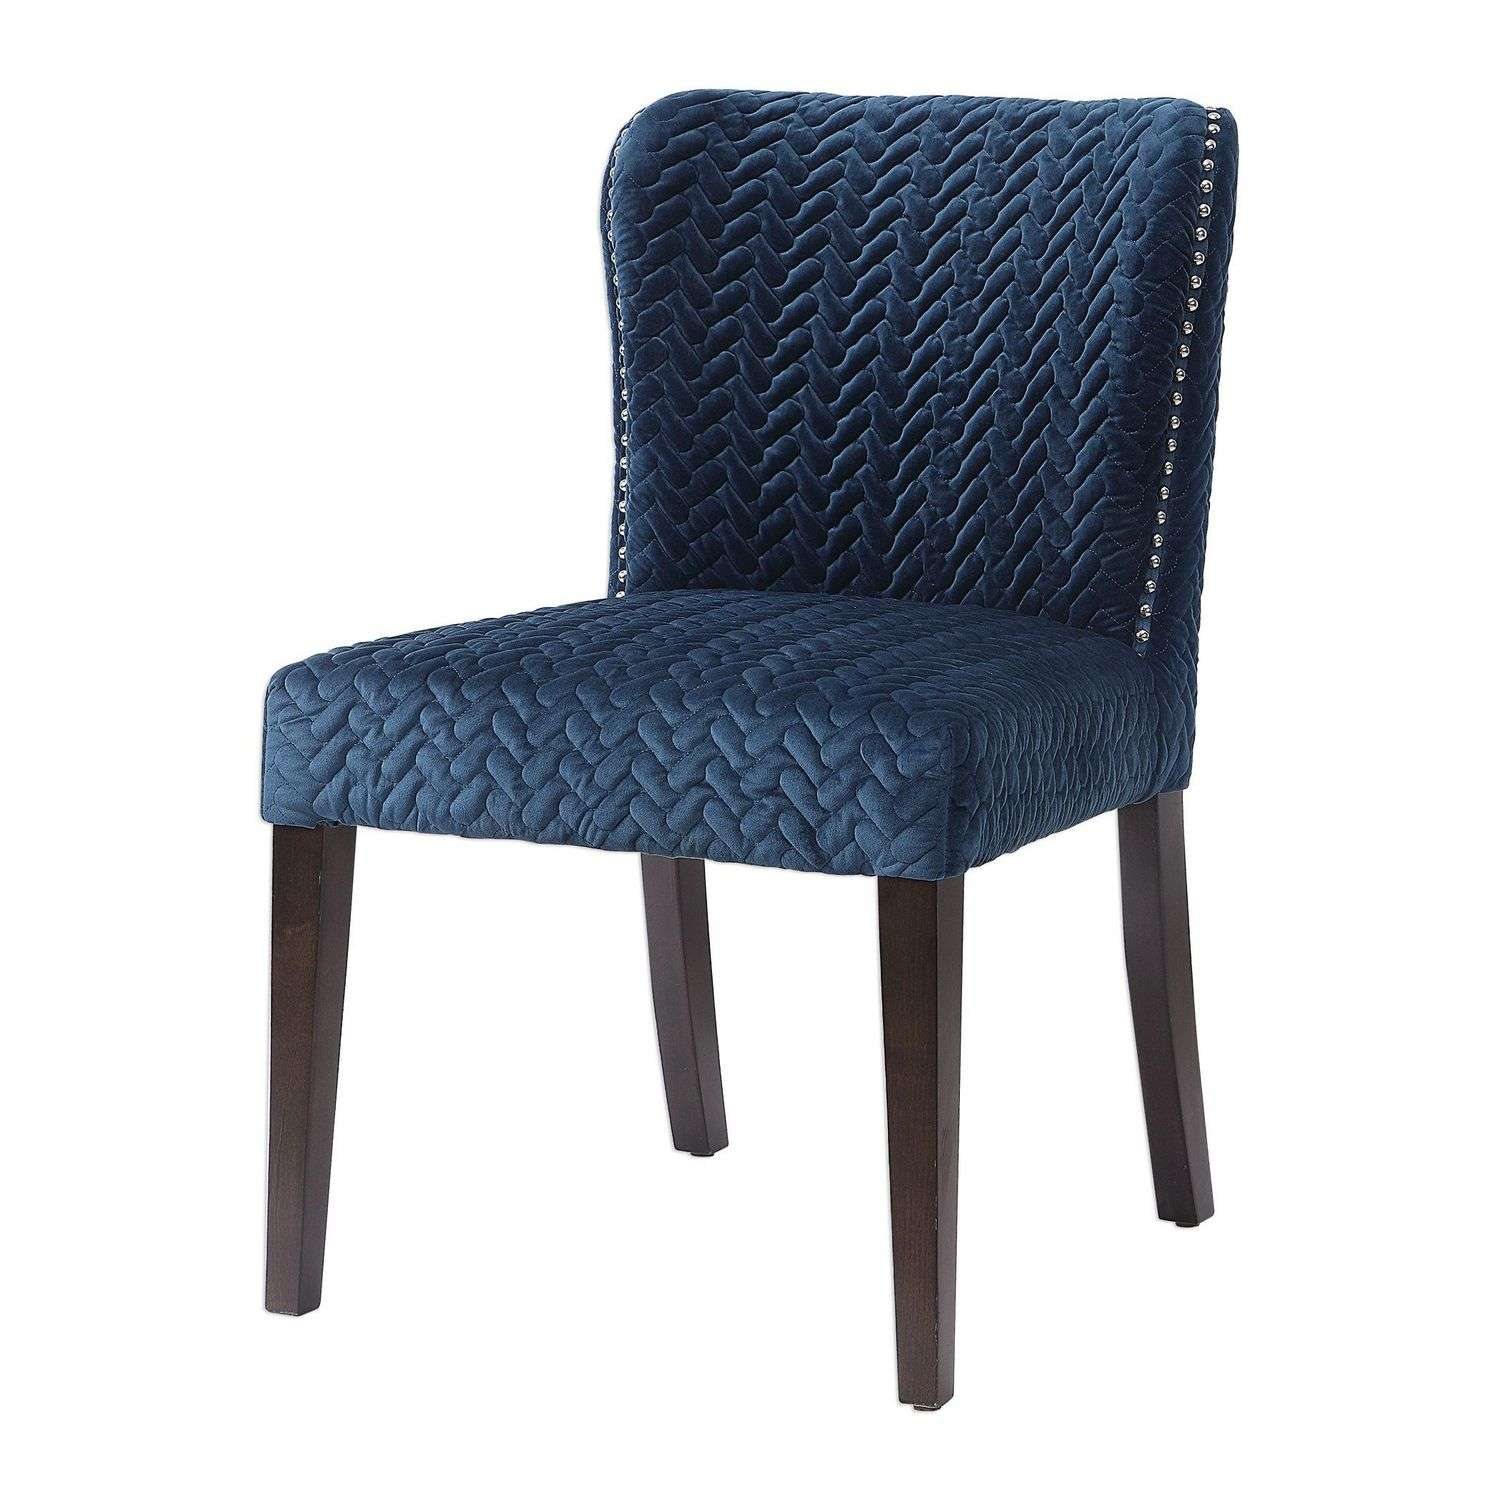 Uttermost Miri Accent Chairs - Set of 2